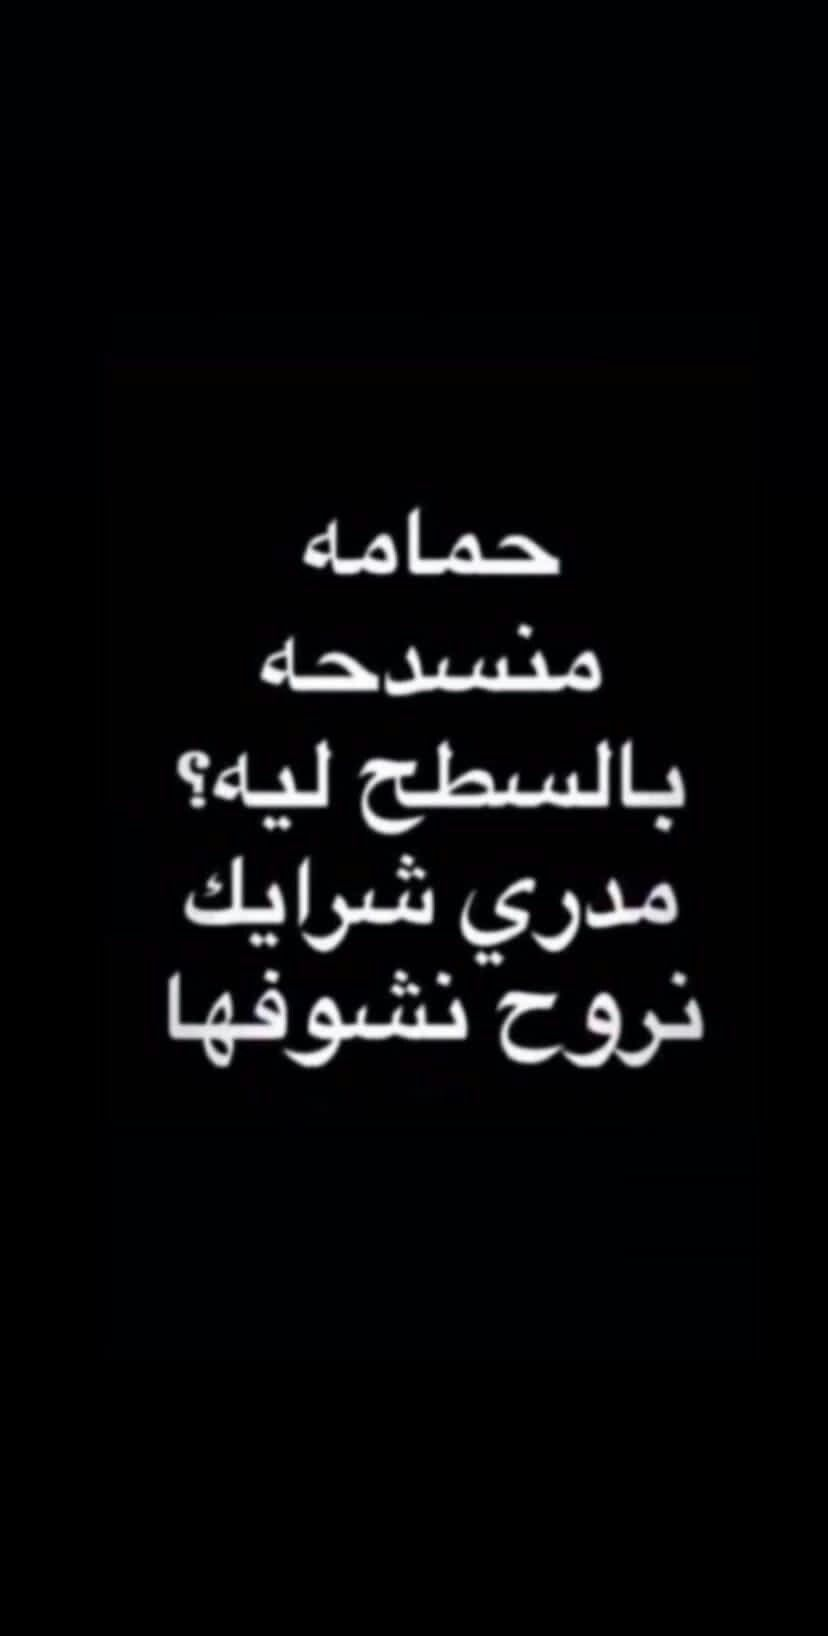 Pin By F Hassan On ضحك و وناسه In 2020 Funny Quotes Funny Joke Quote Funny Arabic Quotes